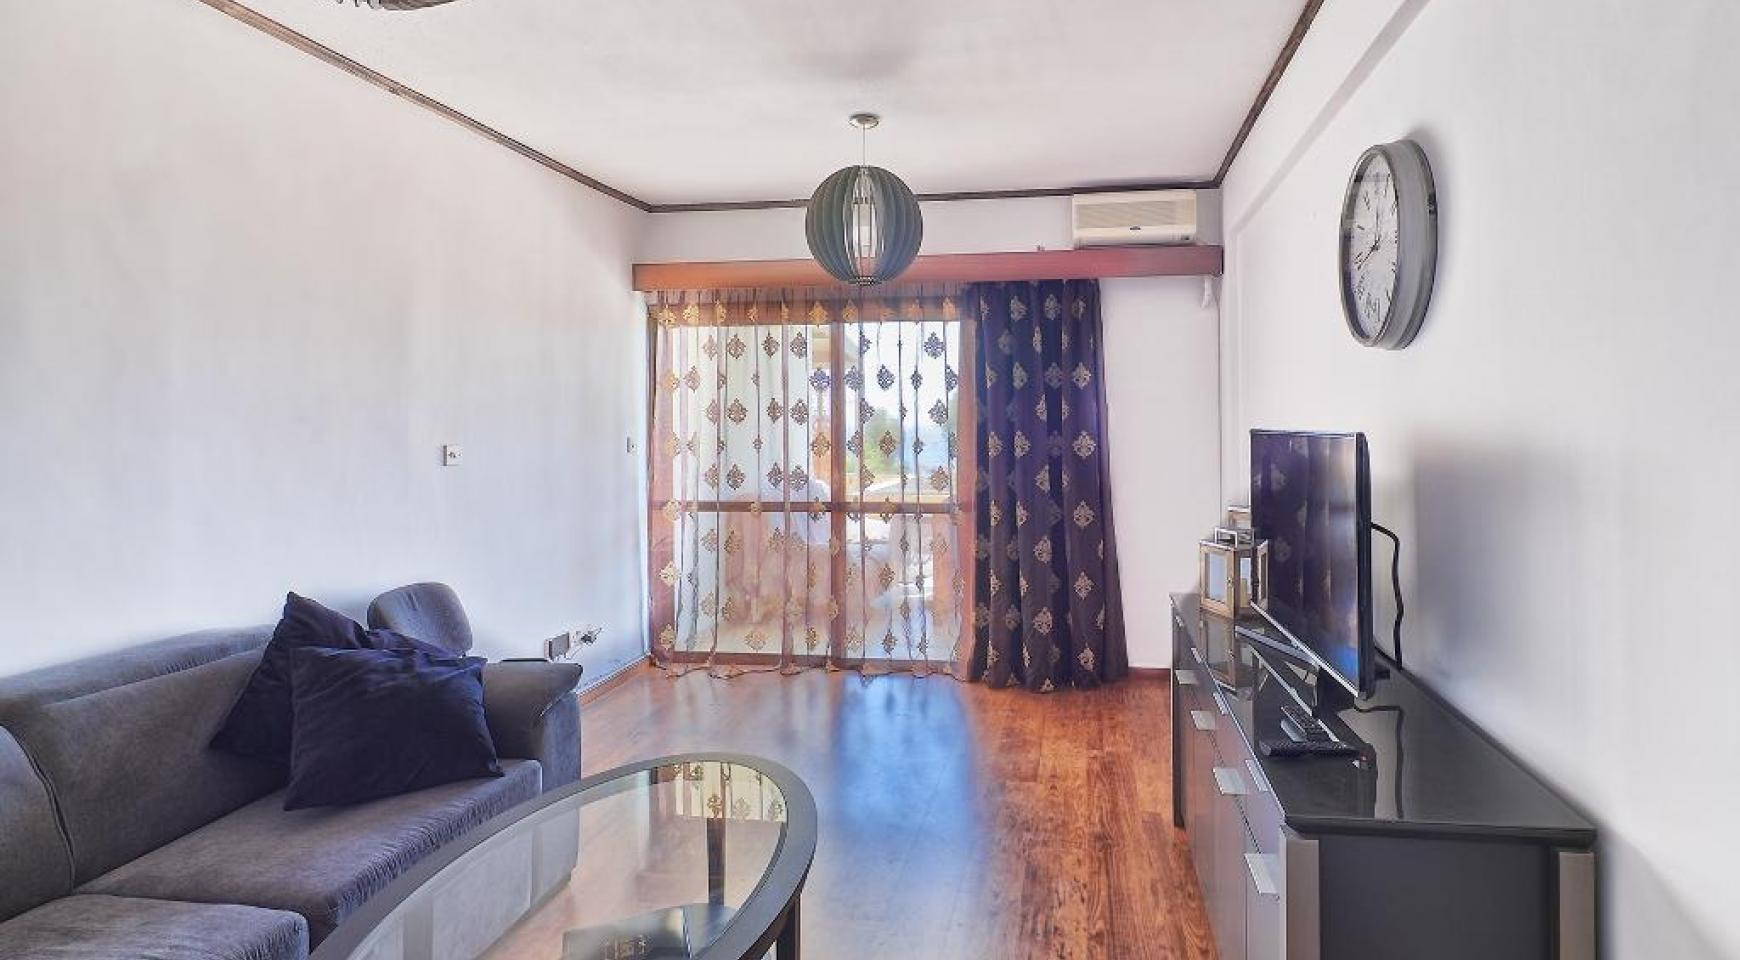 Spacious One Bedroom Apartment Bahus 107 by the Sea - 1